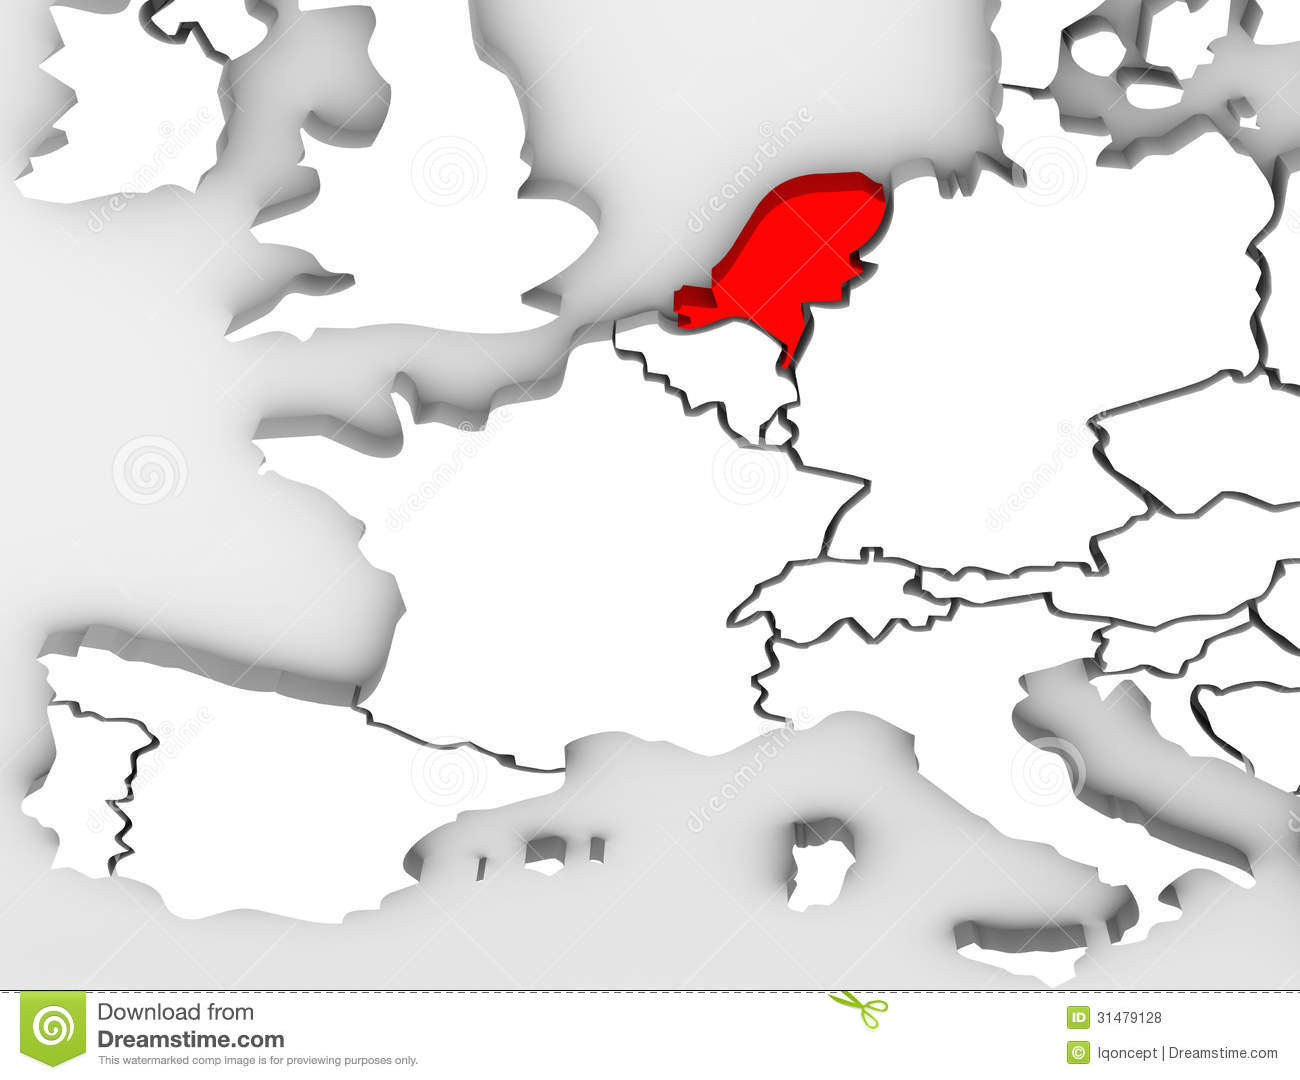 Netherland Country Abstract 3D Map Europe Continent Royalty Free